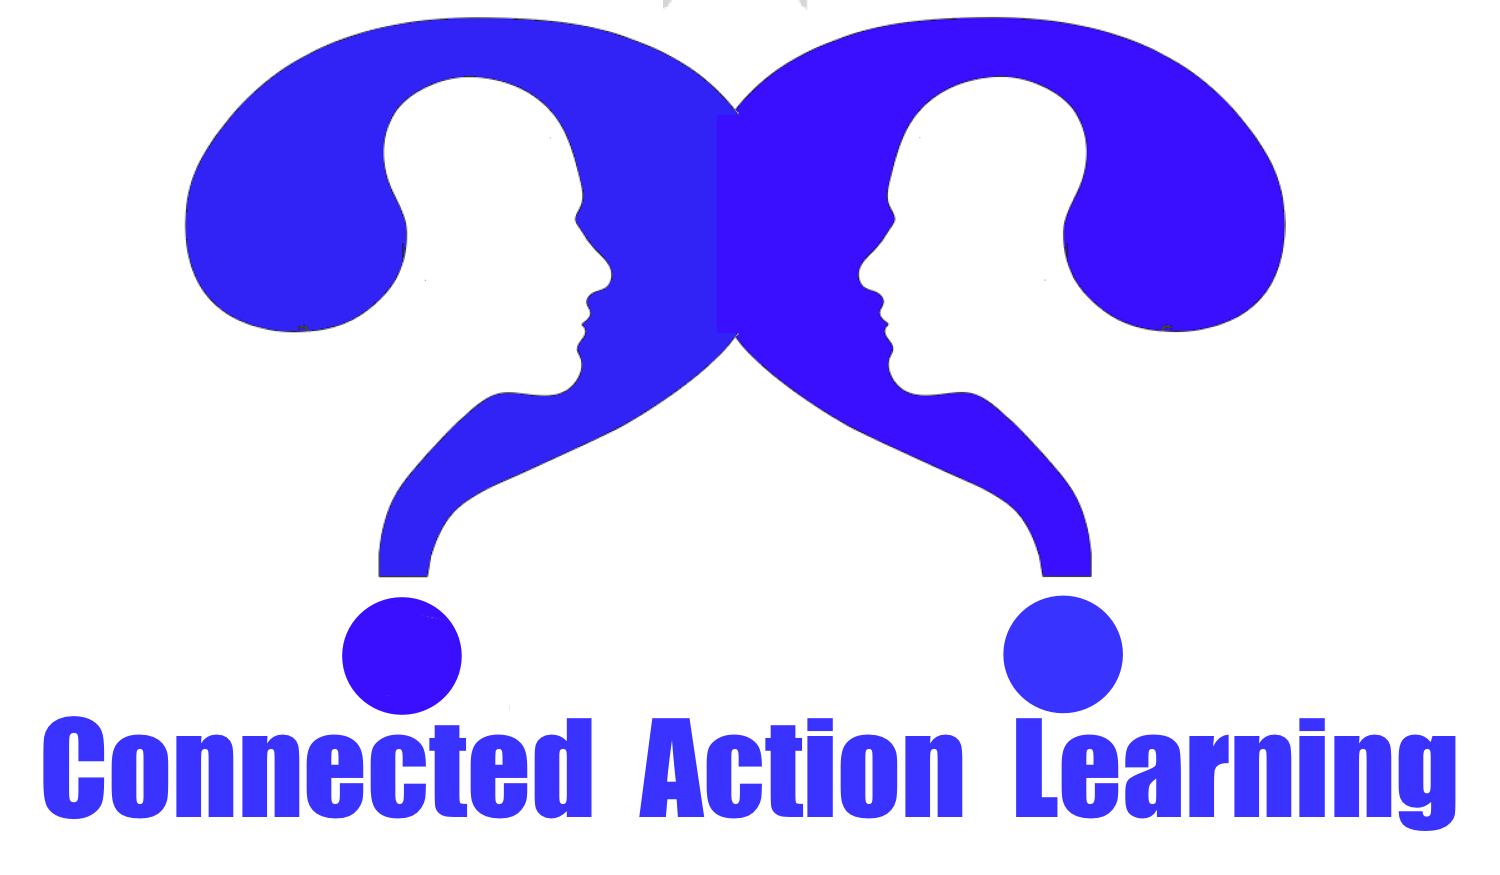 Connected Action Learning